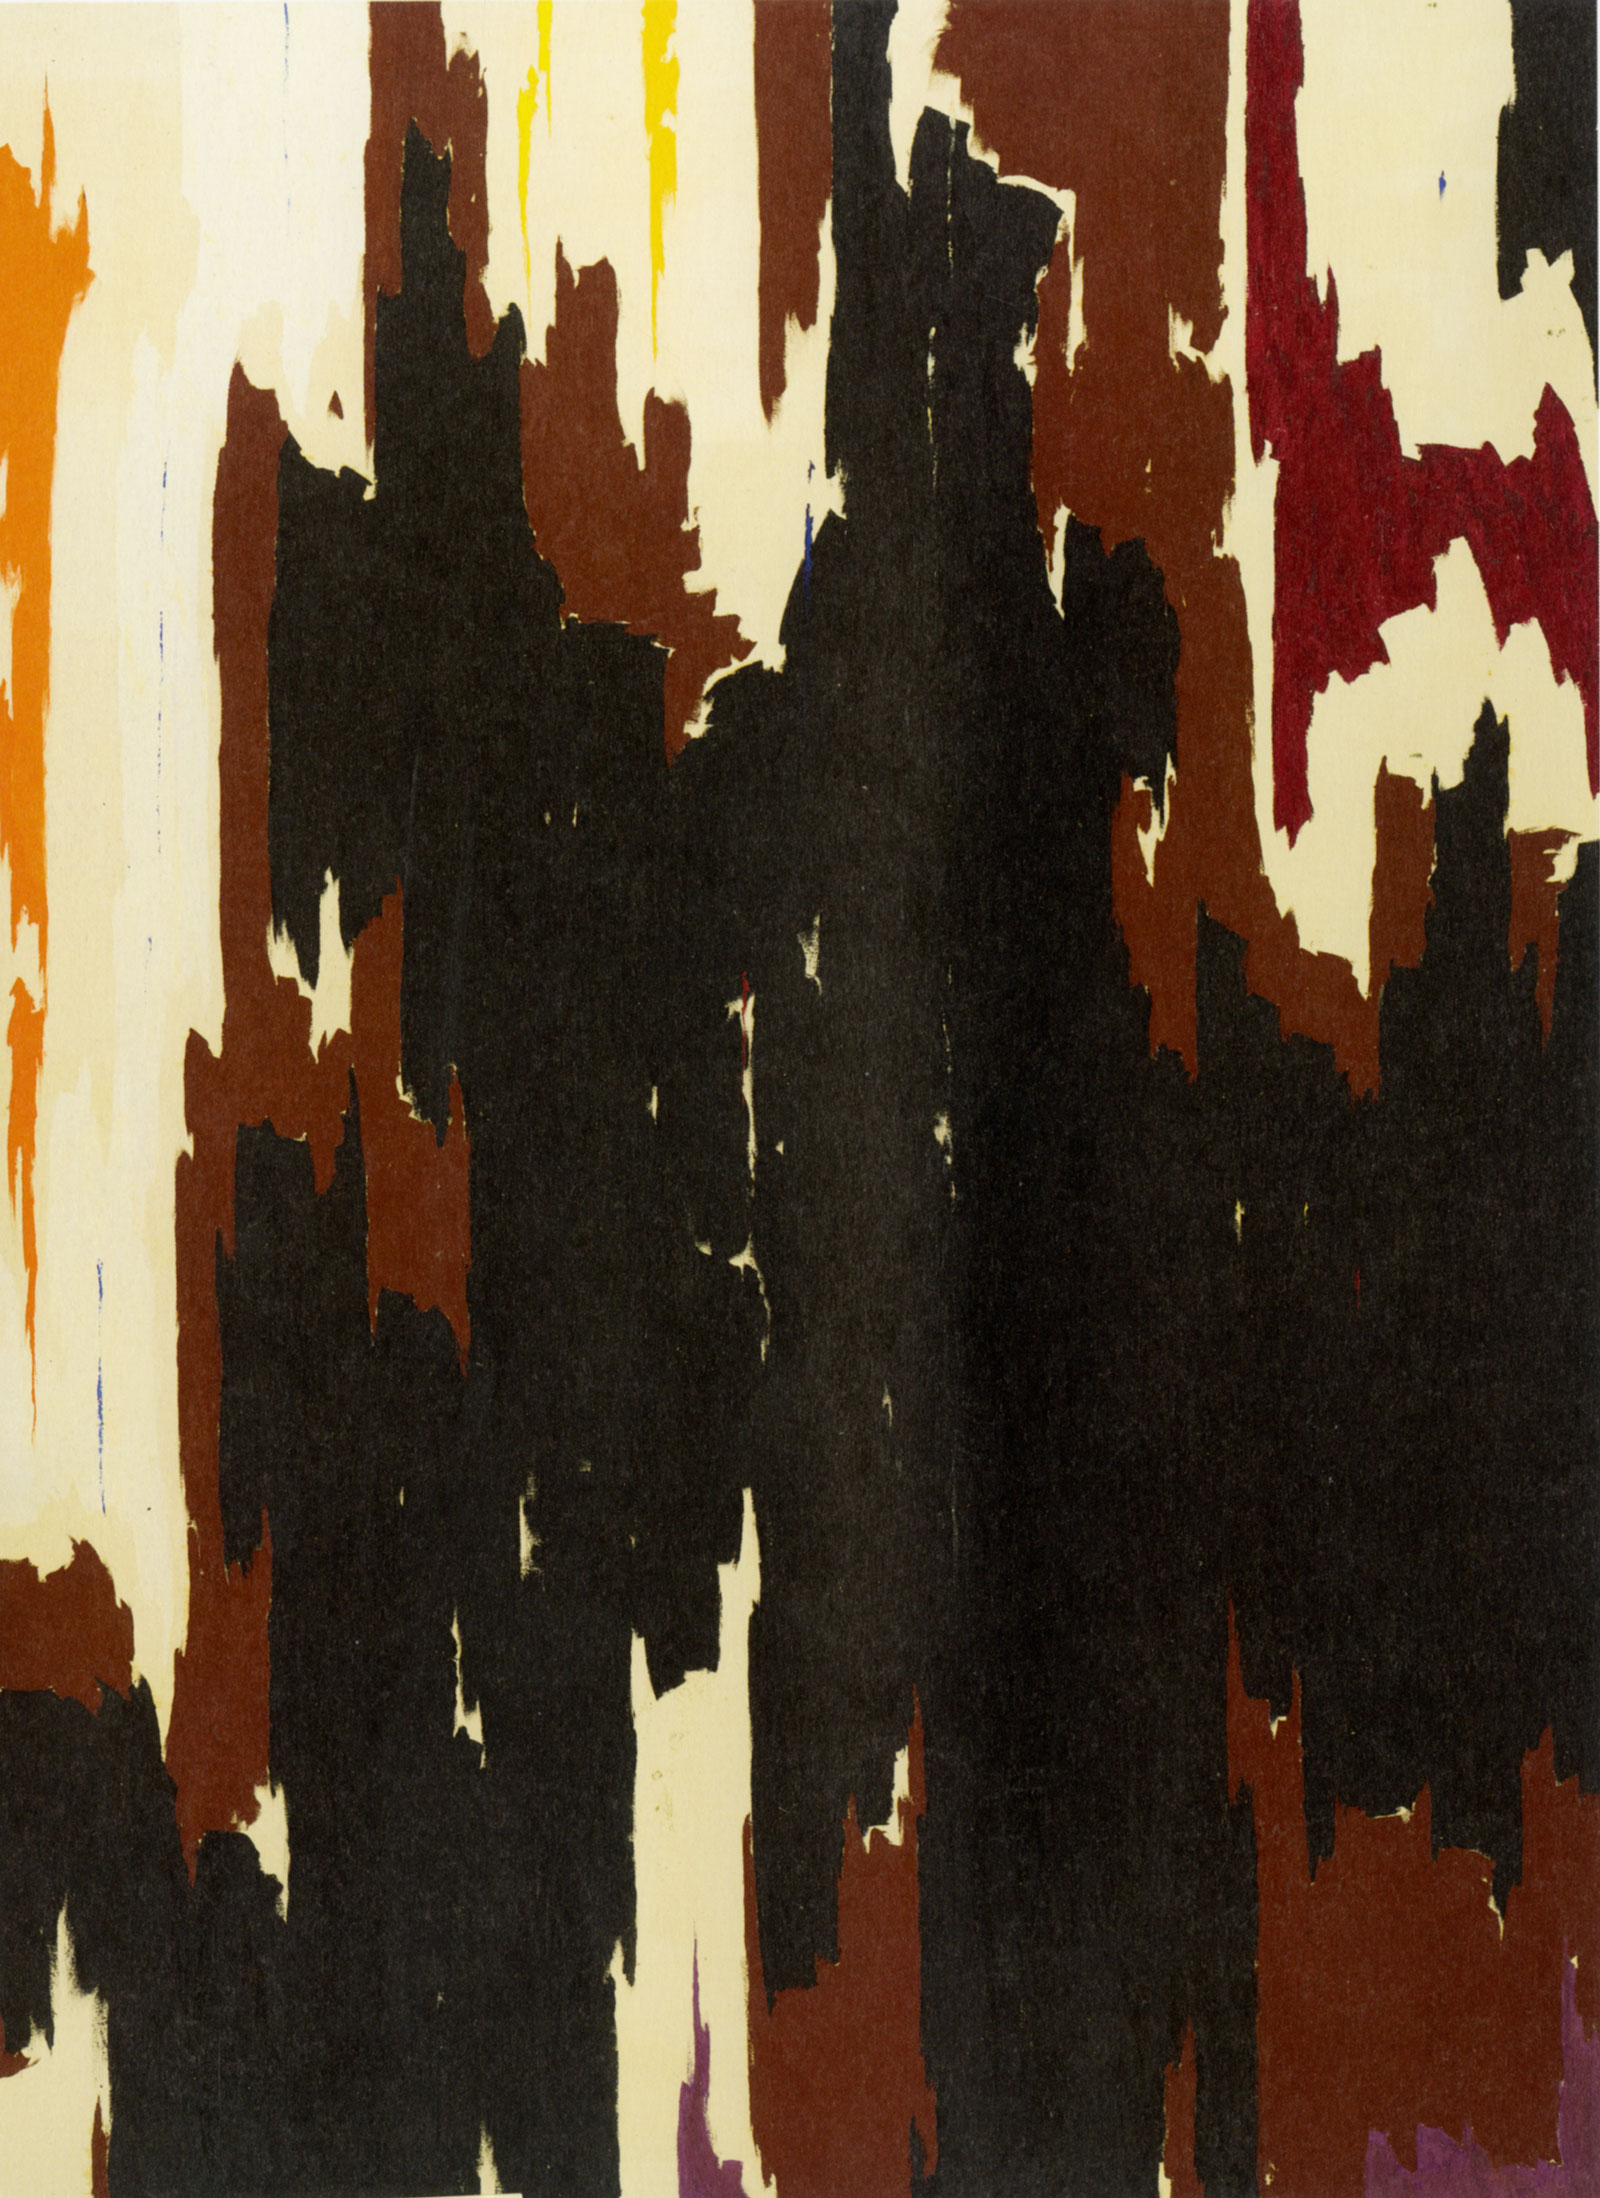 Clyfford Still: PH-150, 1958; click image to enlarge